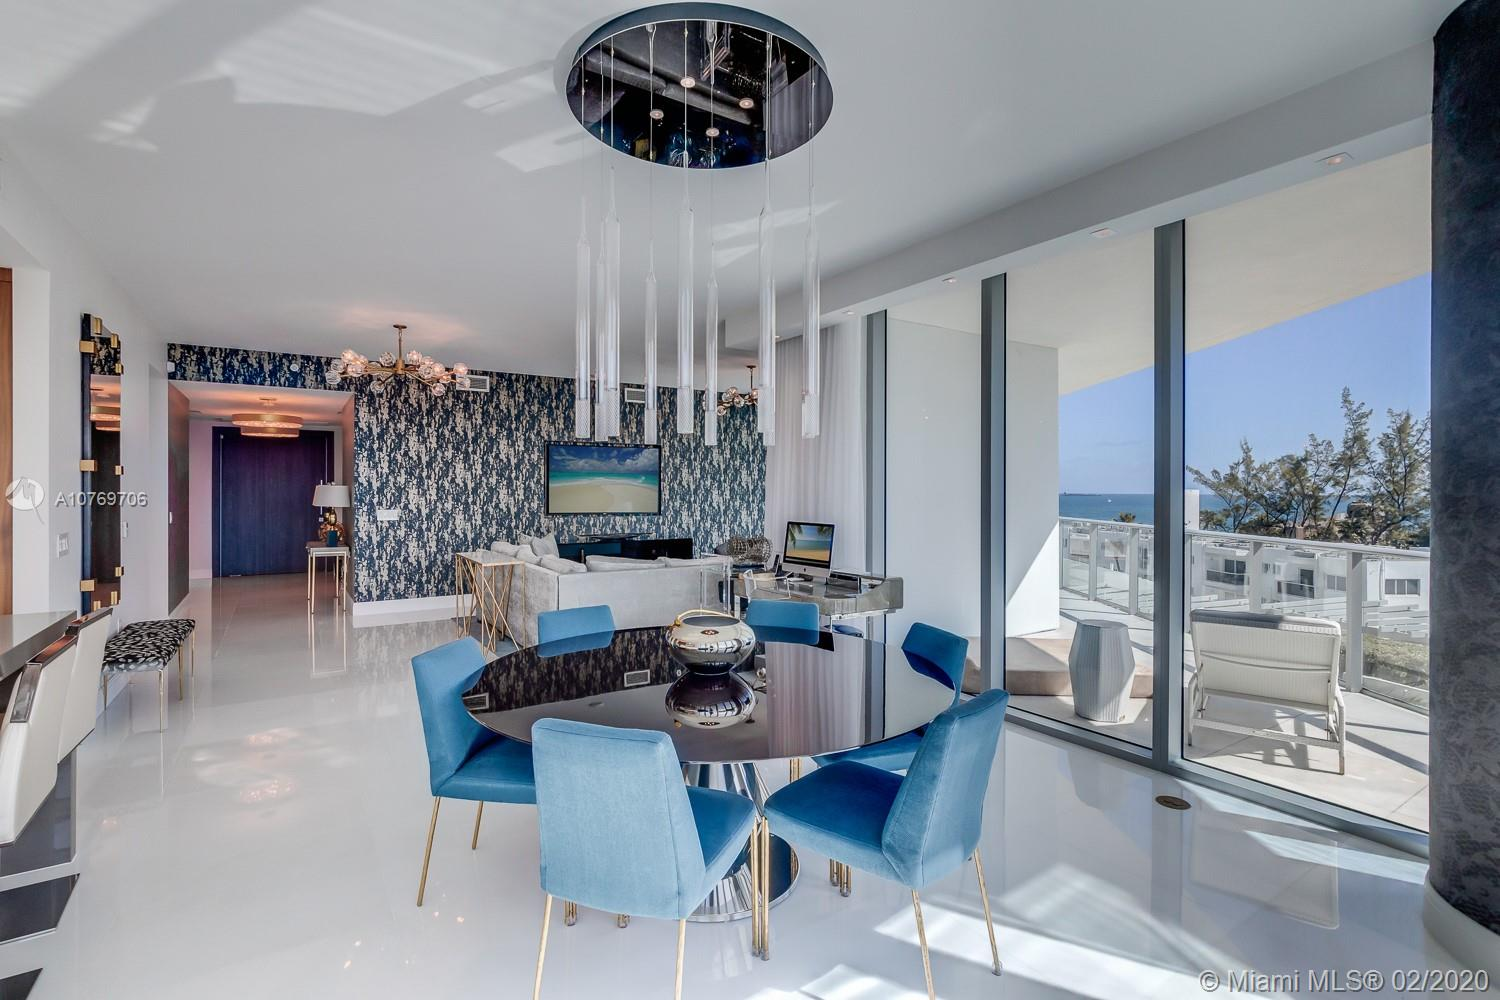 """Magnificent turn-key 3-bed, 3.5-bath corner unit w private elevator, spans 3,558 sf w/2 oversized balconies and endless city & ocean views. Custom interiors w modern white Thassos marble floors, Italian cabinetry, Subzero & Wolf stainless appliances, 10 ft ceilings, 8' solid core doors, upscale furniture, area rugs, lighting, & artwork, automated electric shades/drapes, security cam, audio, & TV's. Master suite features expanded custom closets, beverage station, marble bath, spa tub, rain shower, & automated commode. Paramount is a 5-star complex w full beachside services, pool w/cabanas, poolside bar, state-of-the-art fitness center, TV room, massage, steam, sauna, Paramount's signature, """"Above & Beyond"""" concierge services, integrated smart building technology, & on-site restaurant."""